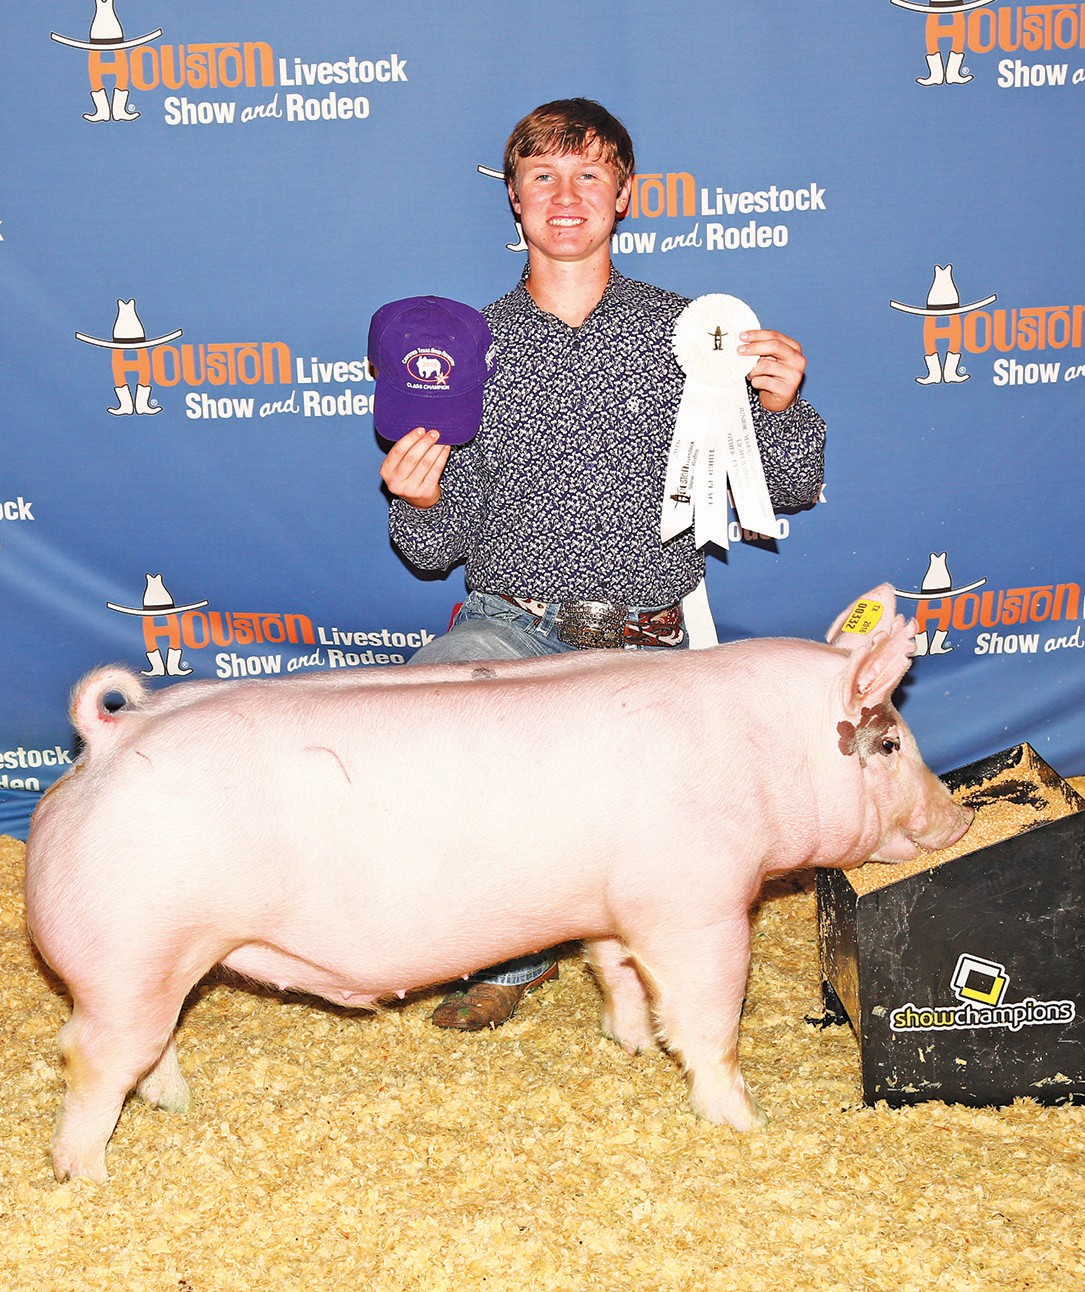 Tyler Pearson also placed 3rd in his cross class at the Houston Livestock Show.